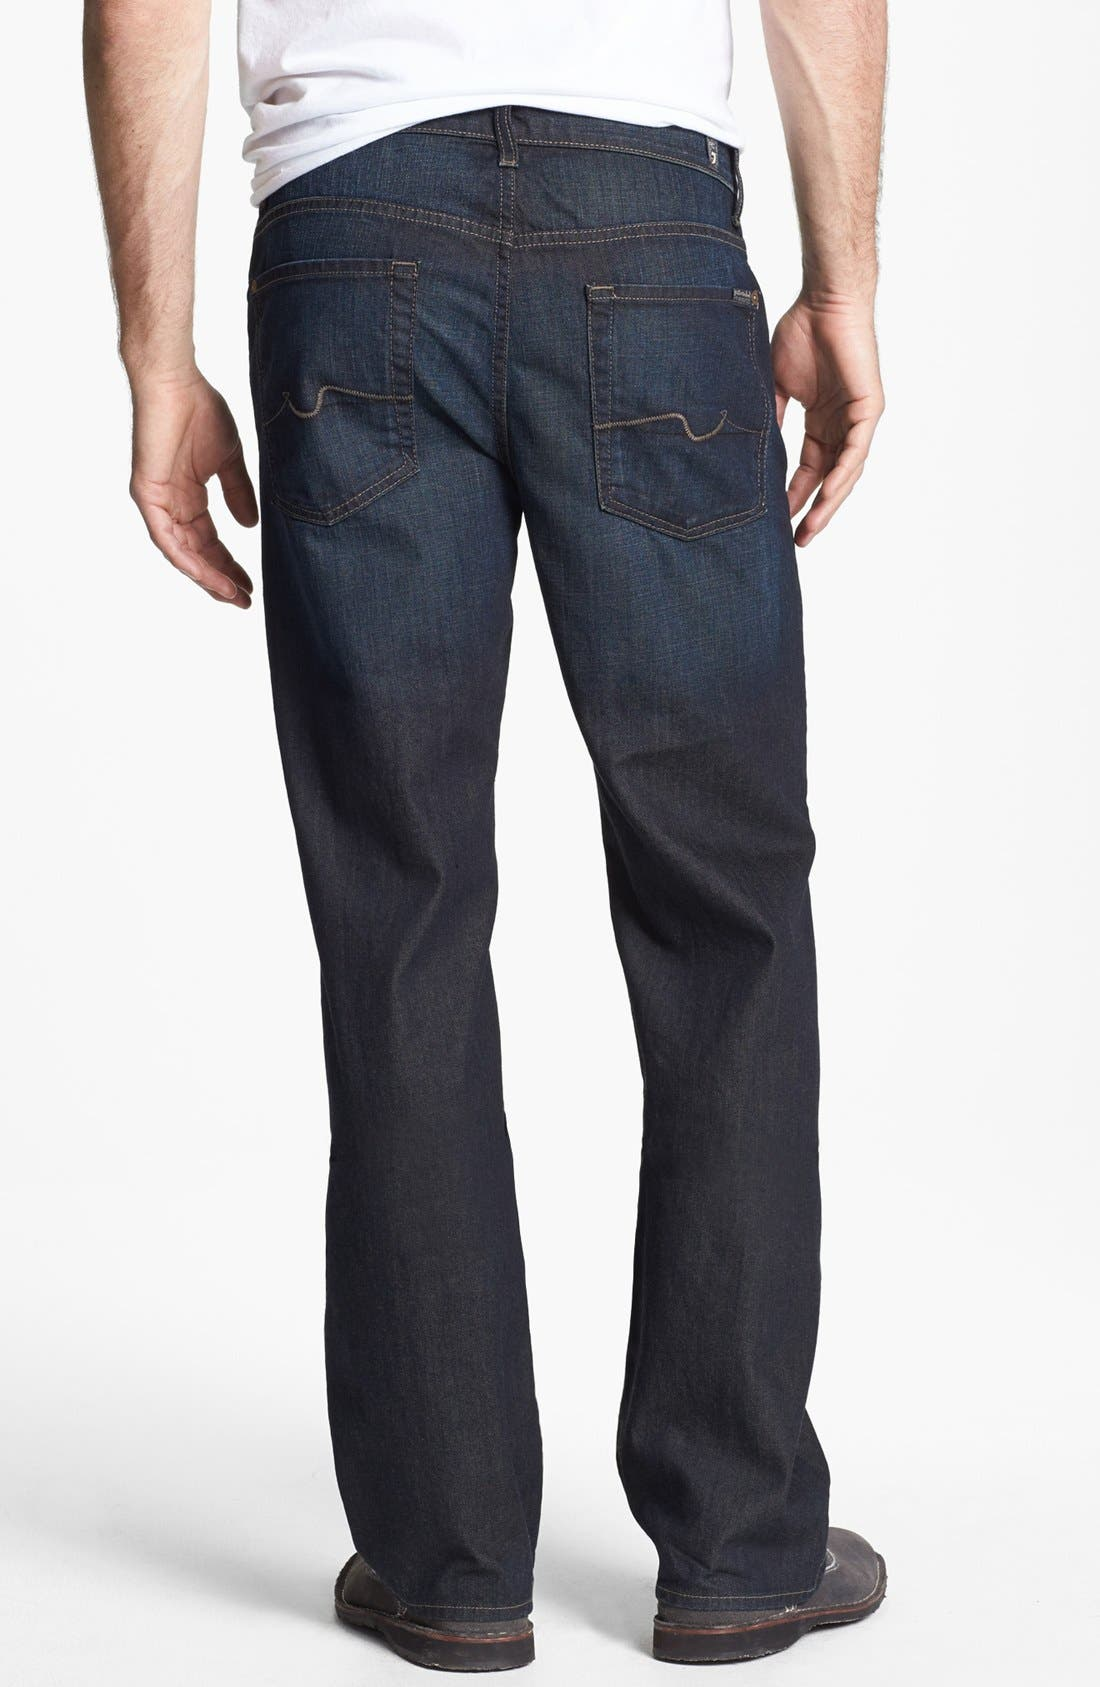 Alternate Image 1 Selected - 7 For All Mankind® 'Austyn' Relaxed Fit Jeans (Amber Night)